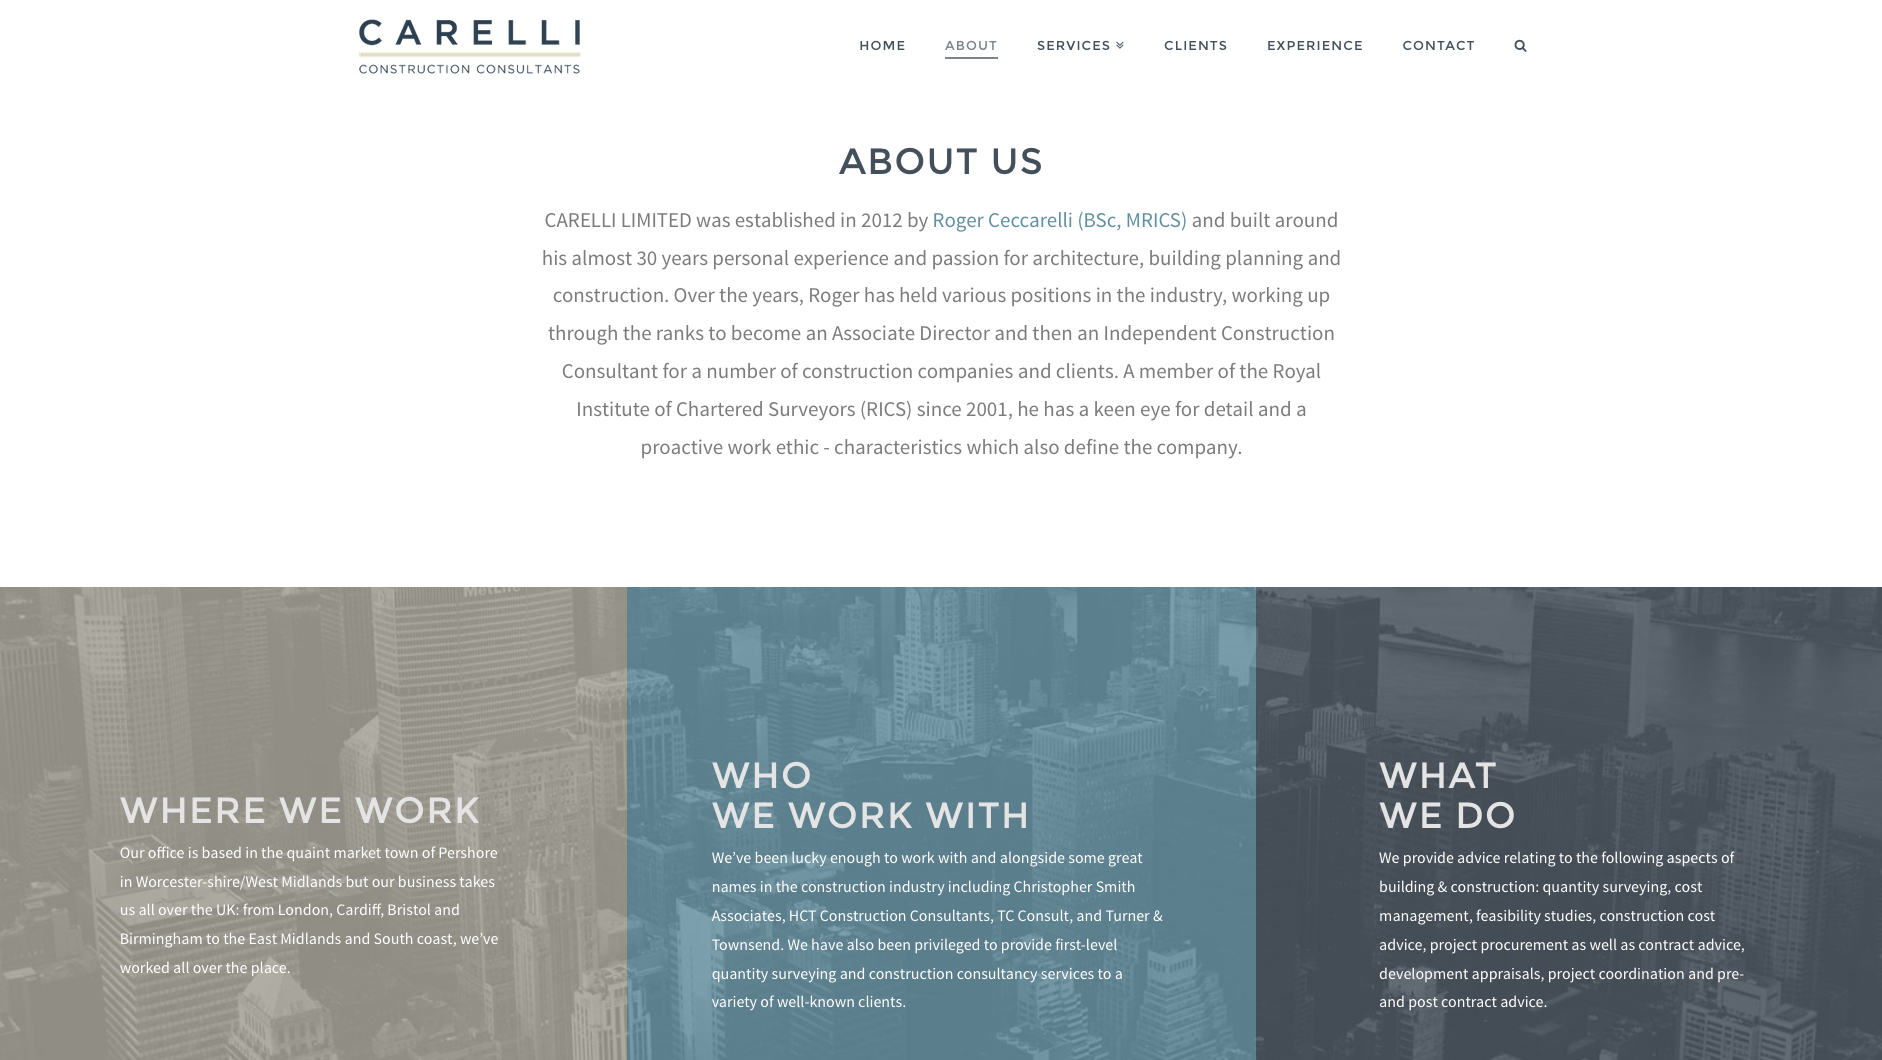 About Us page for Carelli website design